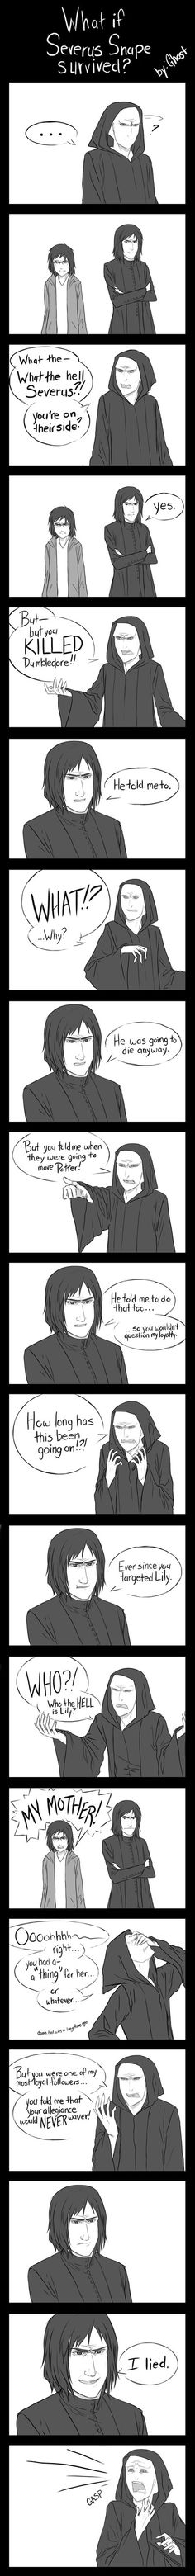 What if Snape survived? | Not going to lie, I read the whole thing in their voices. Someone please make this into a short film!